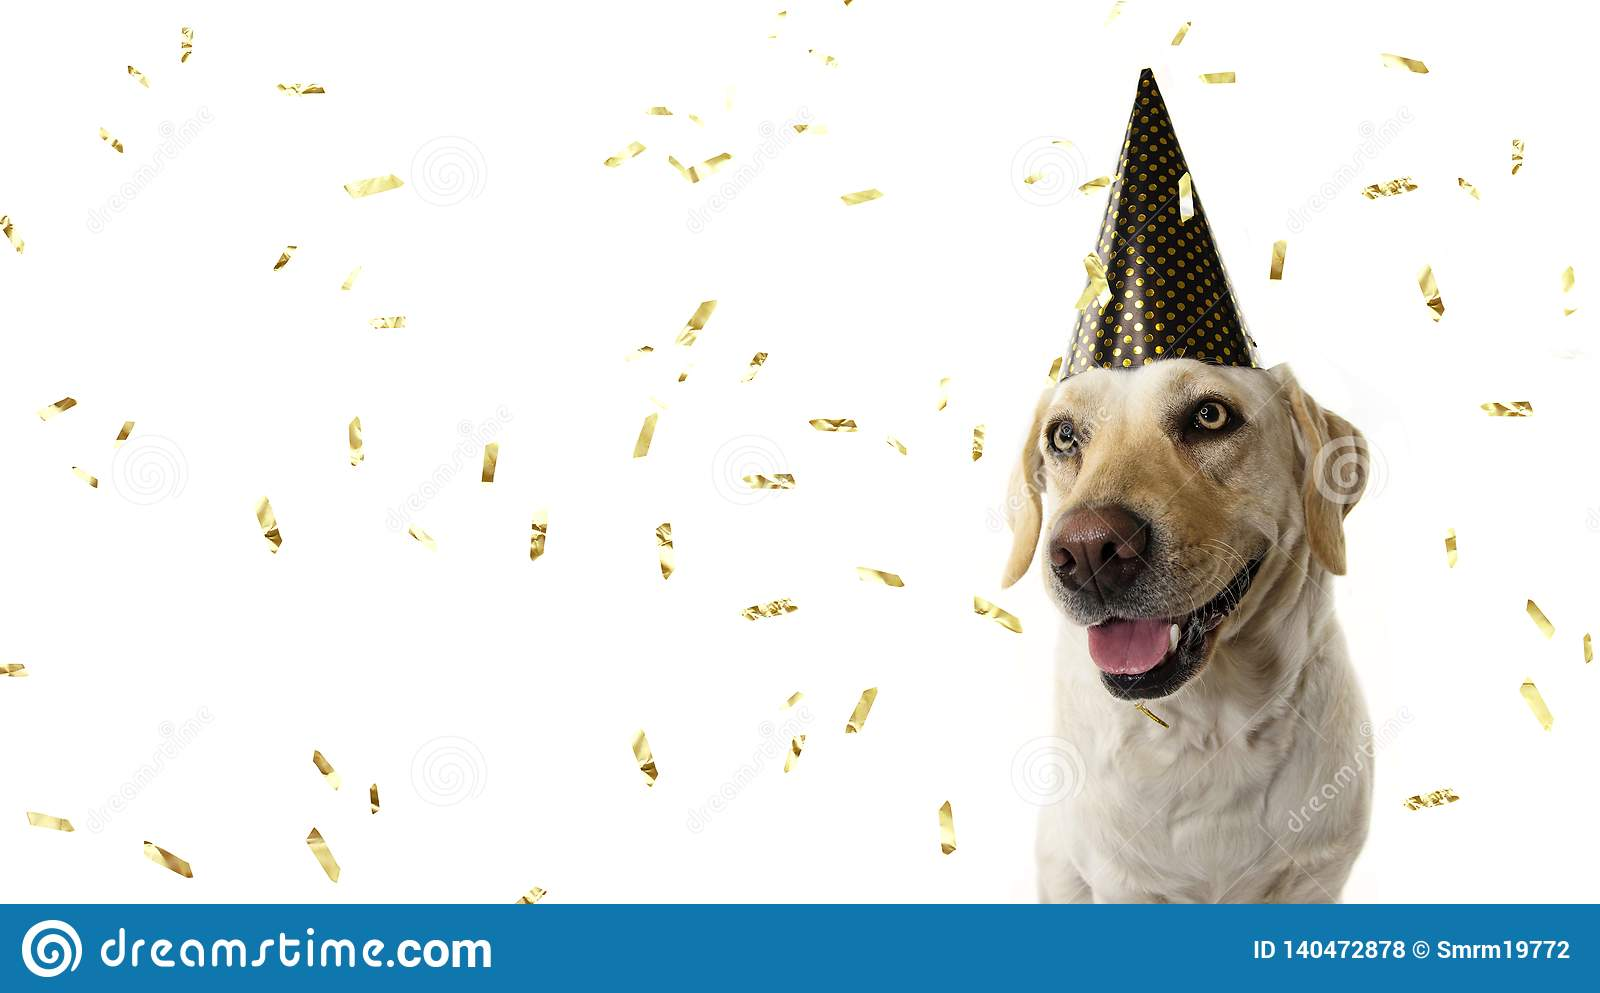 DOG NEW YEAR OR BIRTHDAY PARTY HAT. FUNNY LABRADOR SITTING